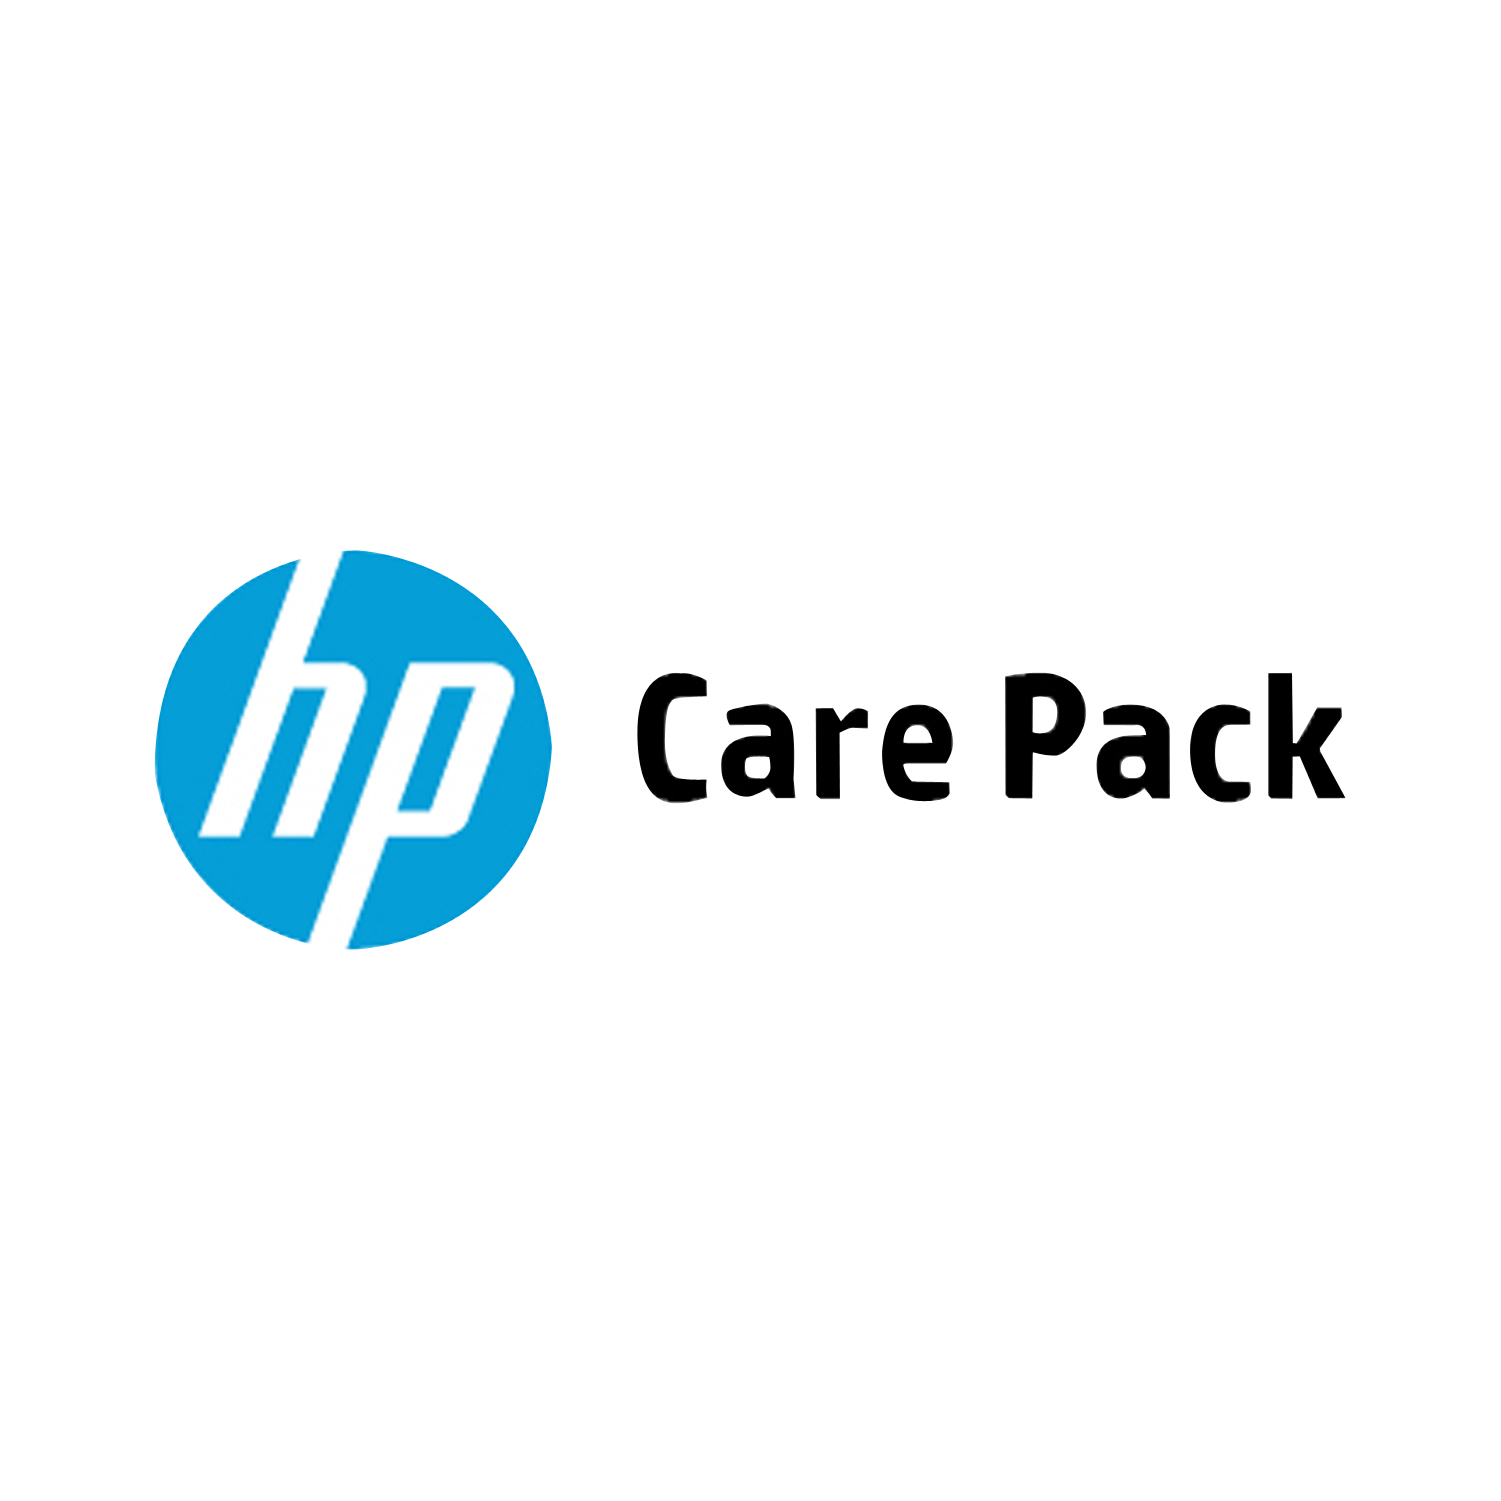 Electronic HP Care Pack Software Technical Support - Technical Support - For HP Access Control Enterprise - Phone Consulting - 3 Years - 9x5 U4PN0E - C2000